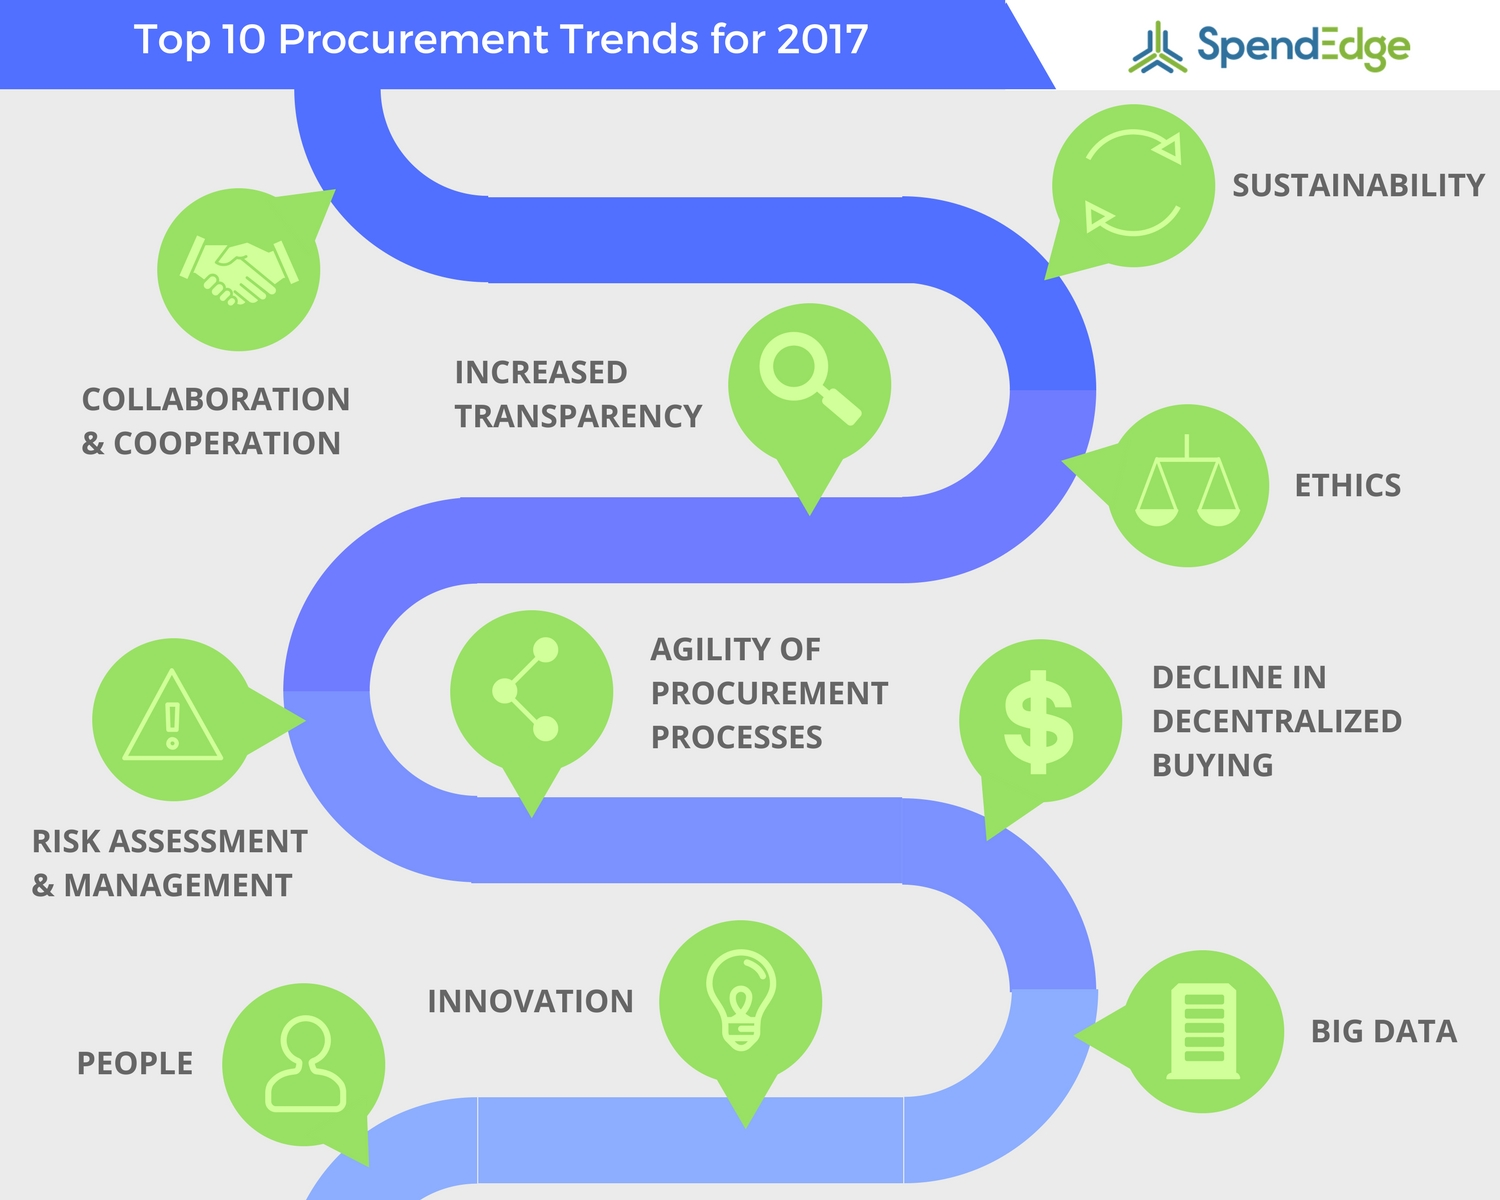 Top 10 Procurement Trends 2017